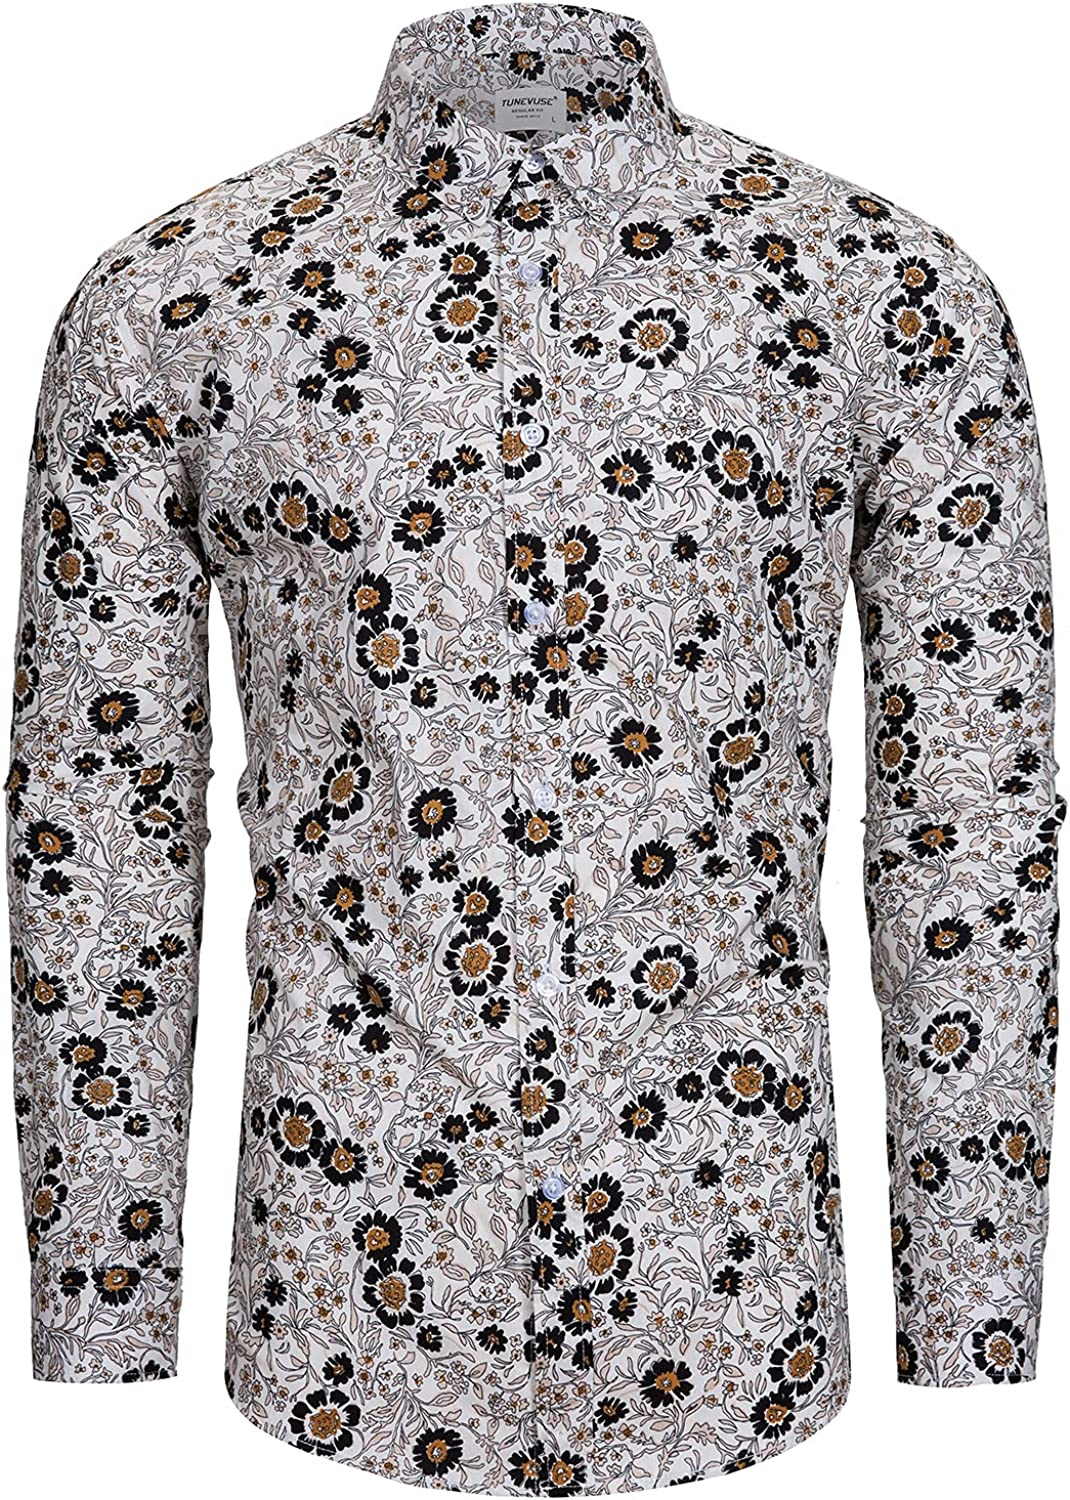 TUNEVUSE Mens Branded Oklahoma City Mall goods 100% Cotton Floral Print Long Shirt Flower Sleeve